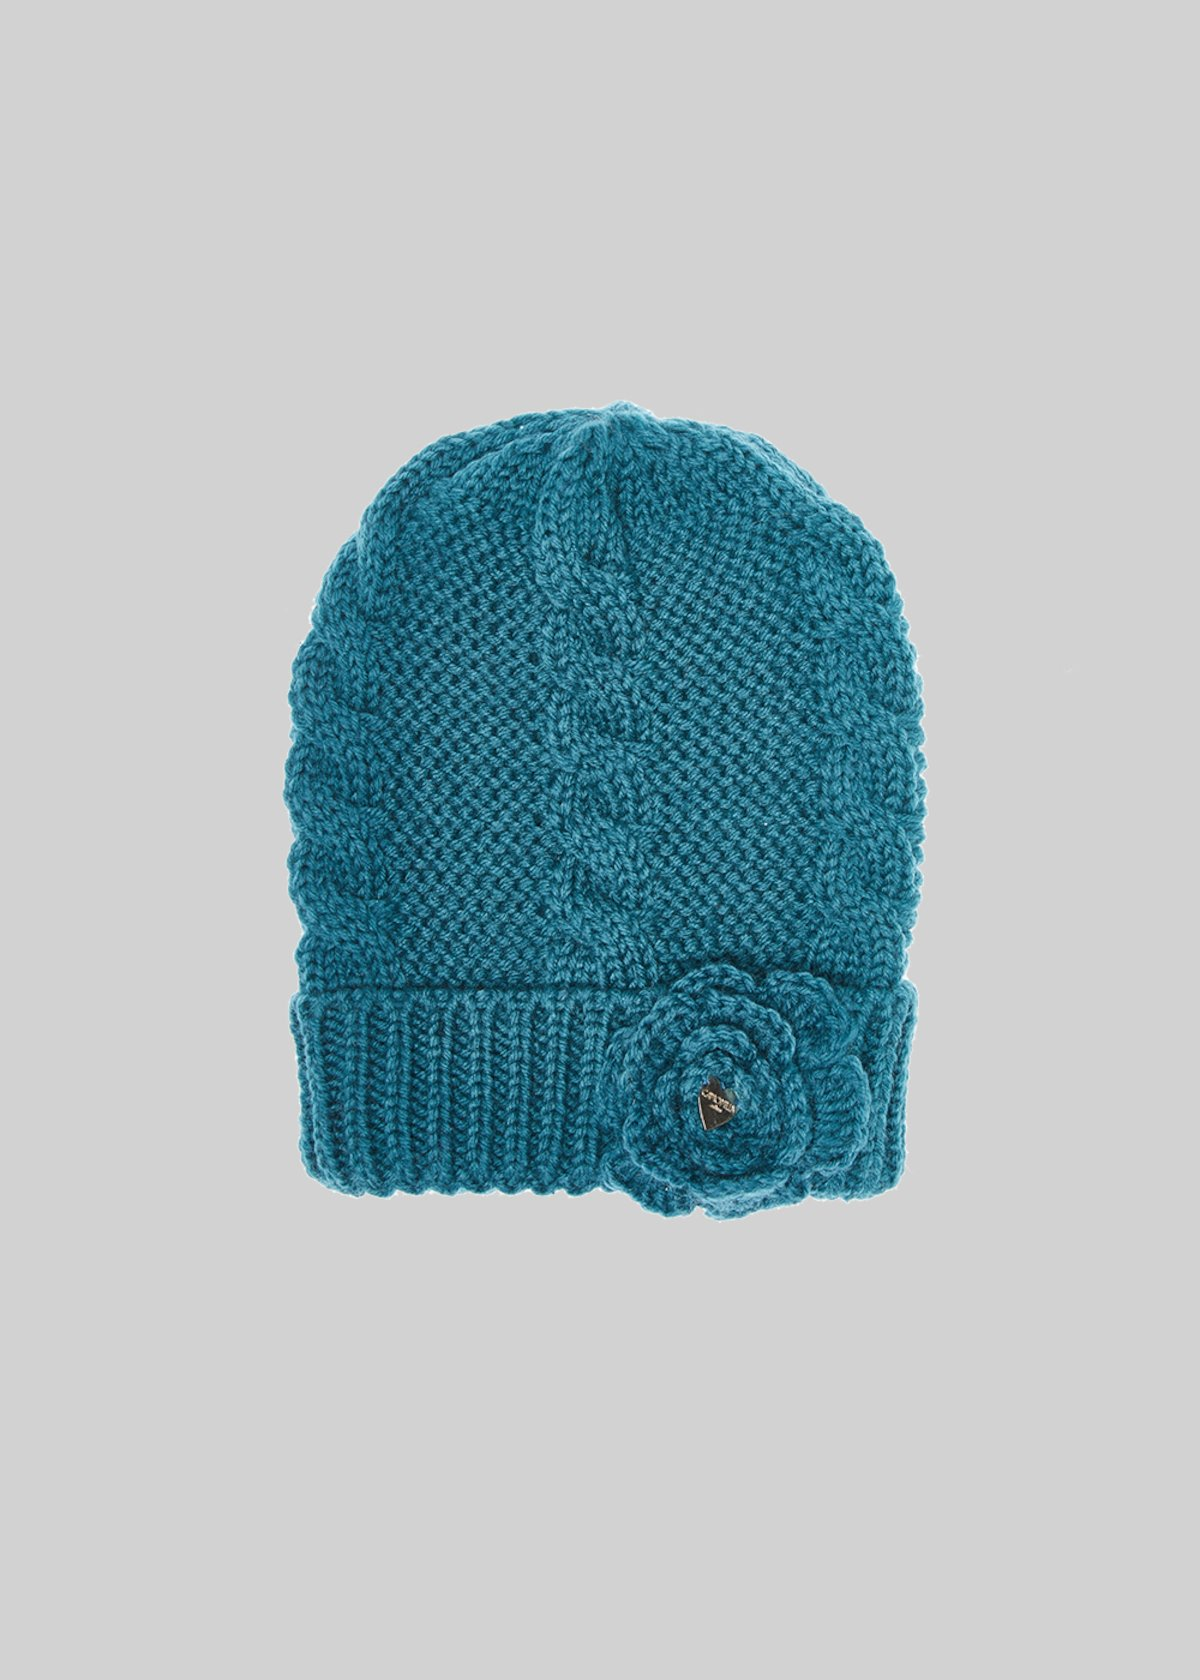 Knitted Cabys hat with flowers